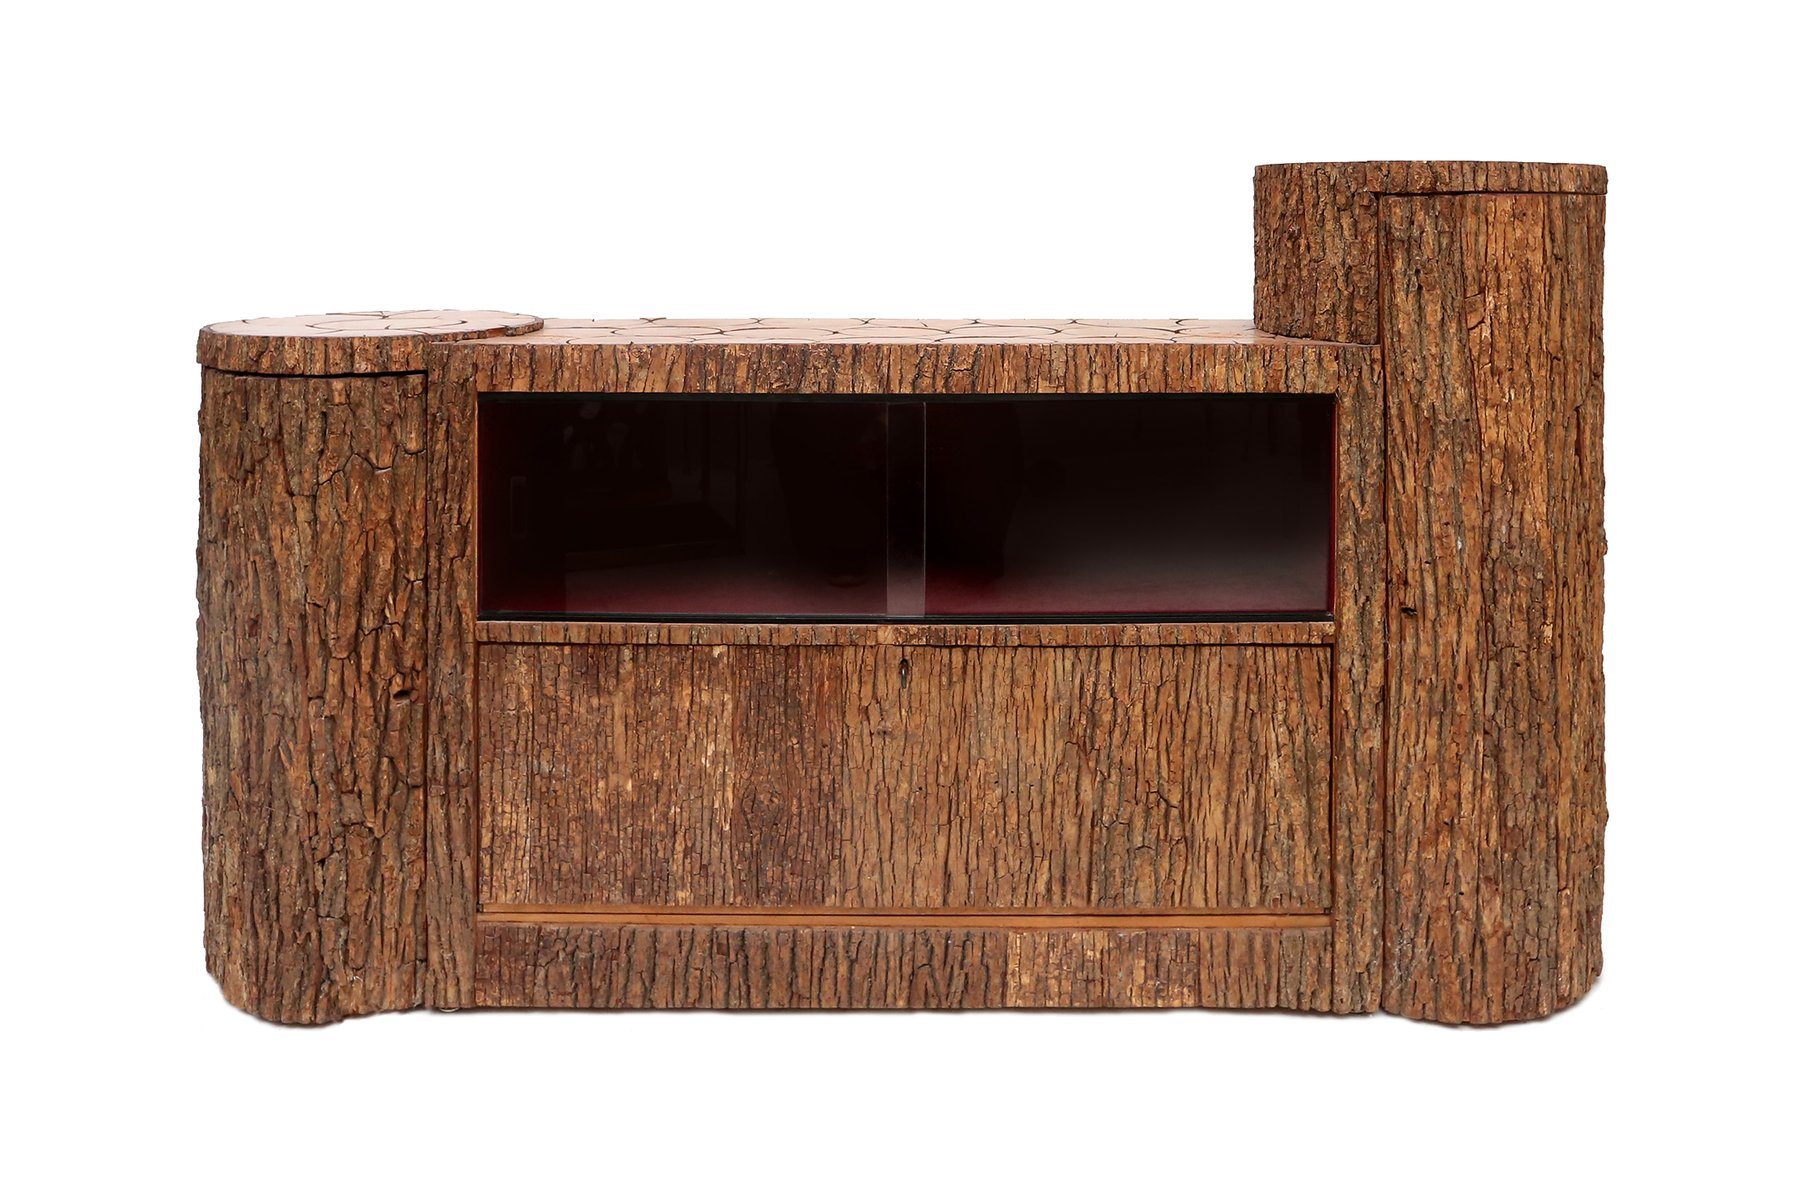 Bark credenza 1950s for sale at pamono for 1950 s credenza